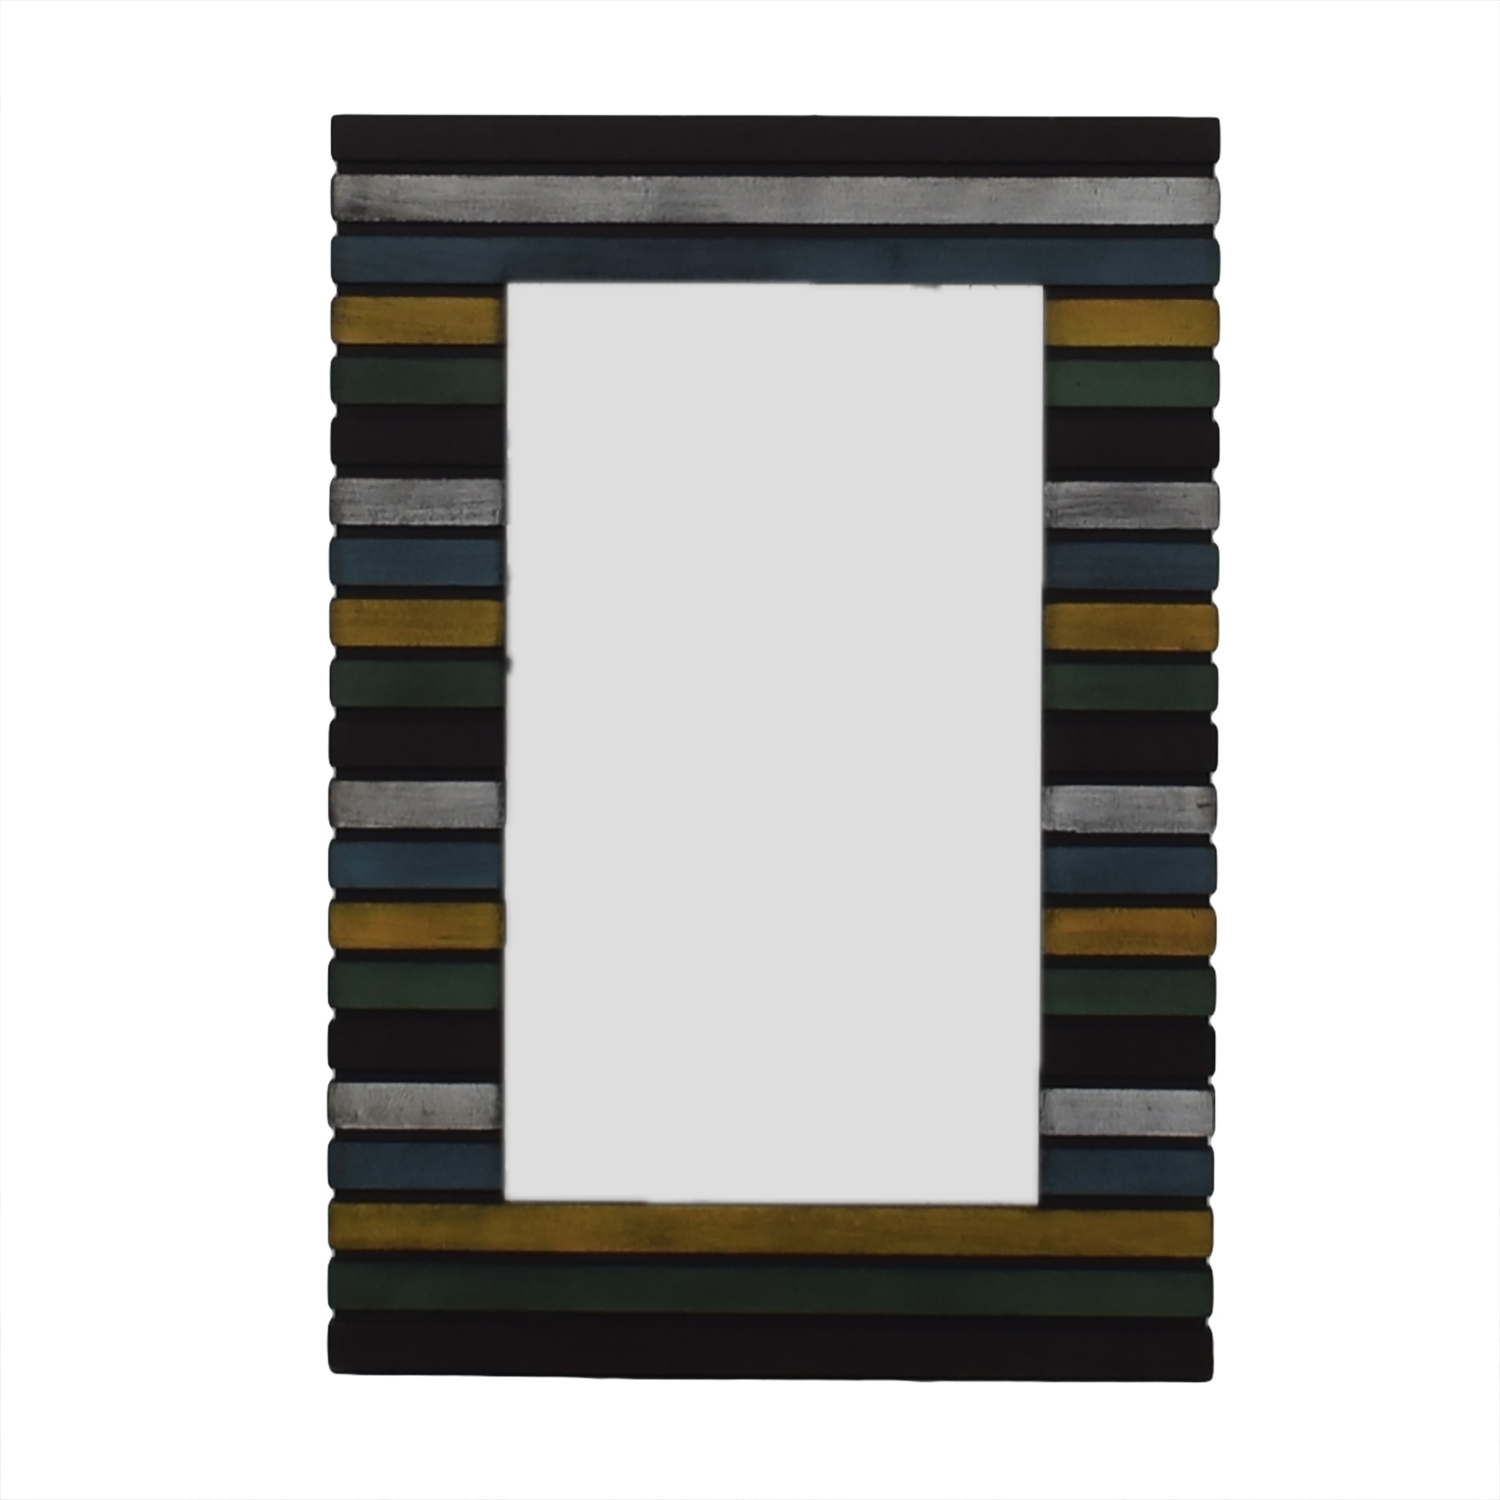 [%56% Off – Colorful Wall Mirror / Decor In Most Recent Colorful Wall Mirrors|colorful Wall Mirrors Inside Best And Newest 56% Off – Colorful Wall Mirror / Decor|well Liked Colorful Wall Mirrors Throughout 56% Off – Colorful Wall Mirror / Decor|most Recent 56% Off – Colorful Wall Mirror / Decor Throughout Colorful Wall Mirrors%] (View 3 of 20)